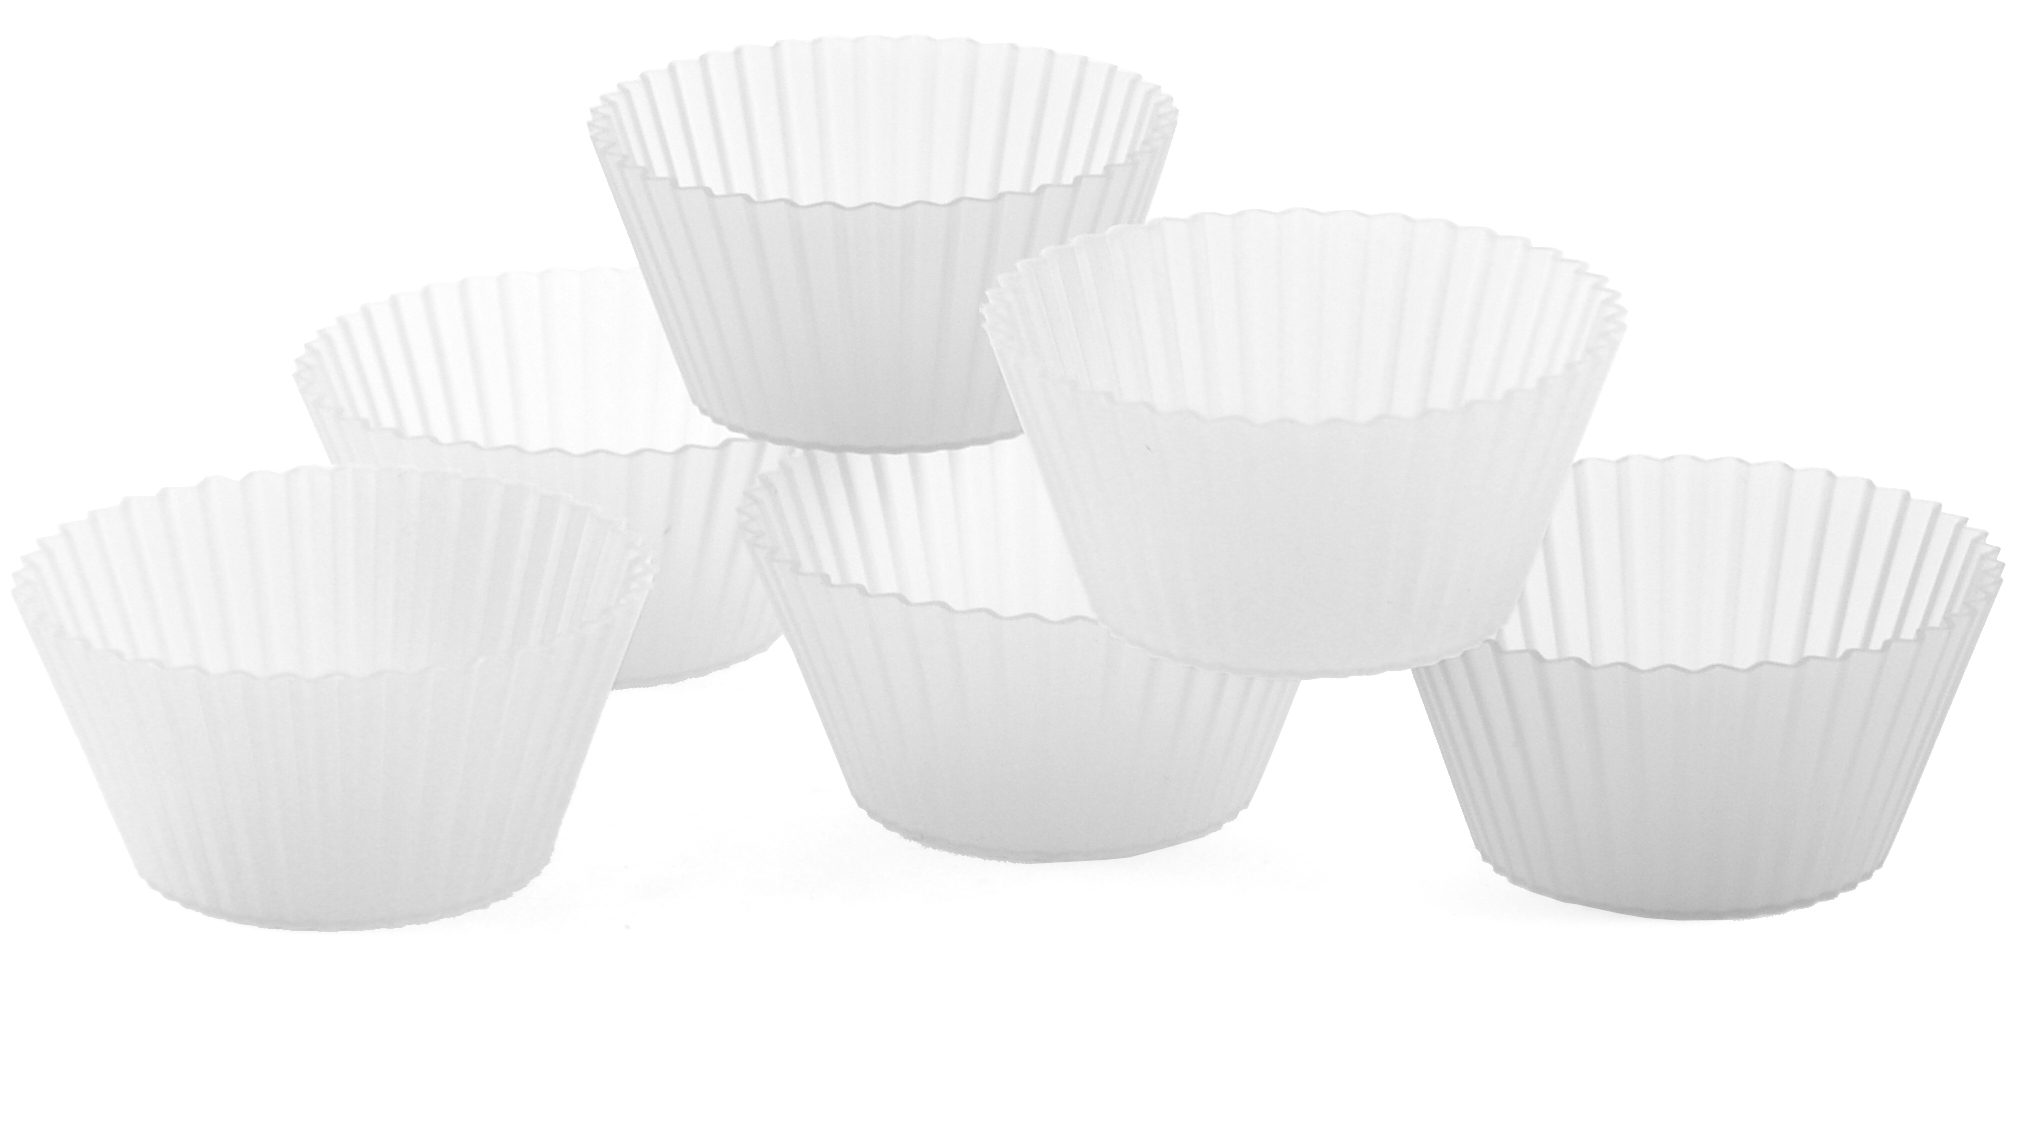 Regency Sili-Cups Mini Muffin Cup, Set of 6